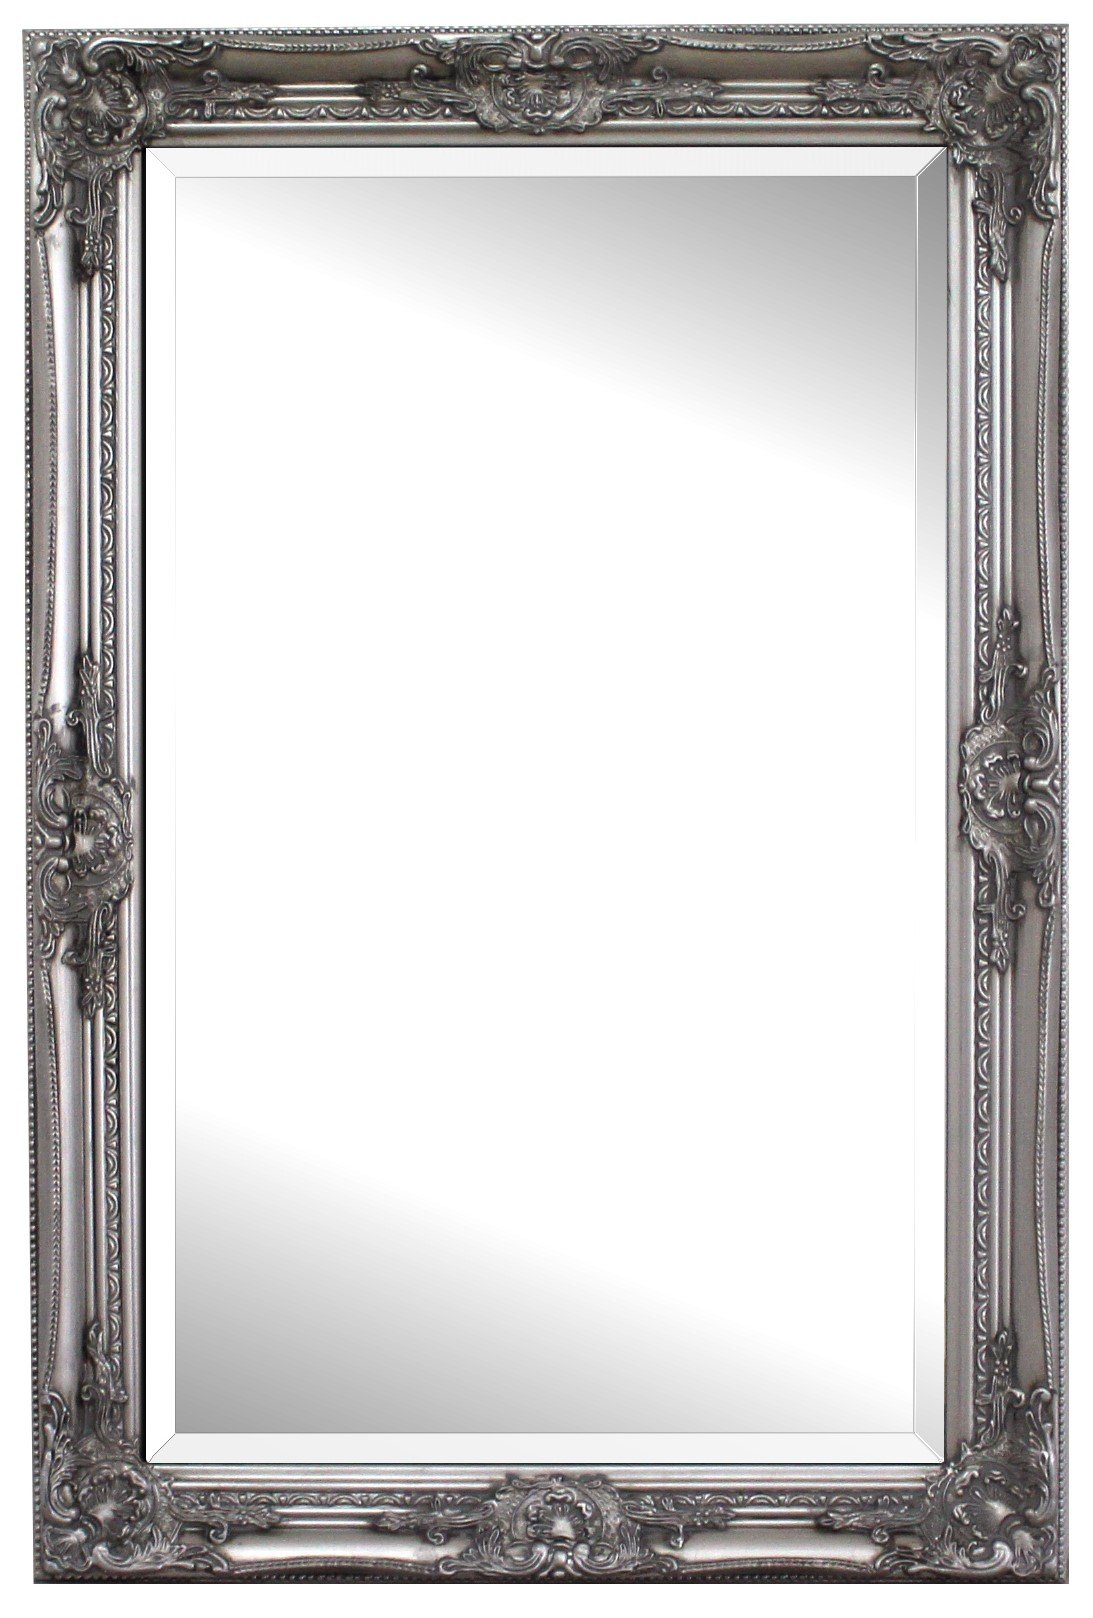 Solid wood shabby chic wall mirror large 90 x 60 cm for Miroir 60x90